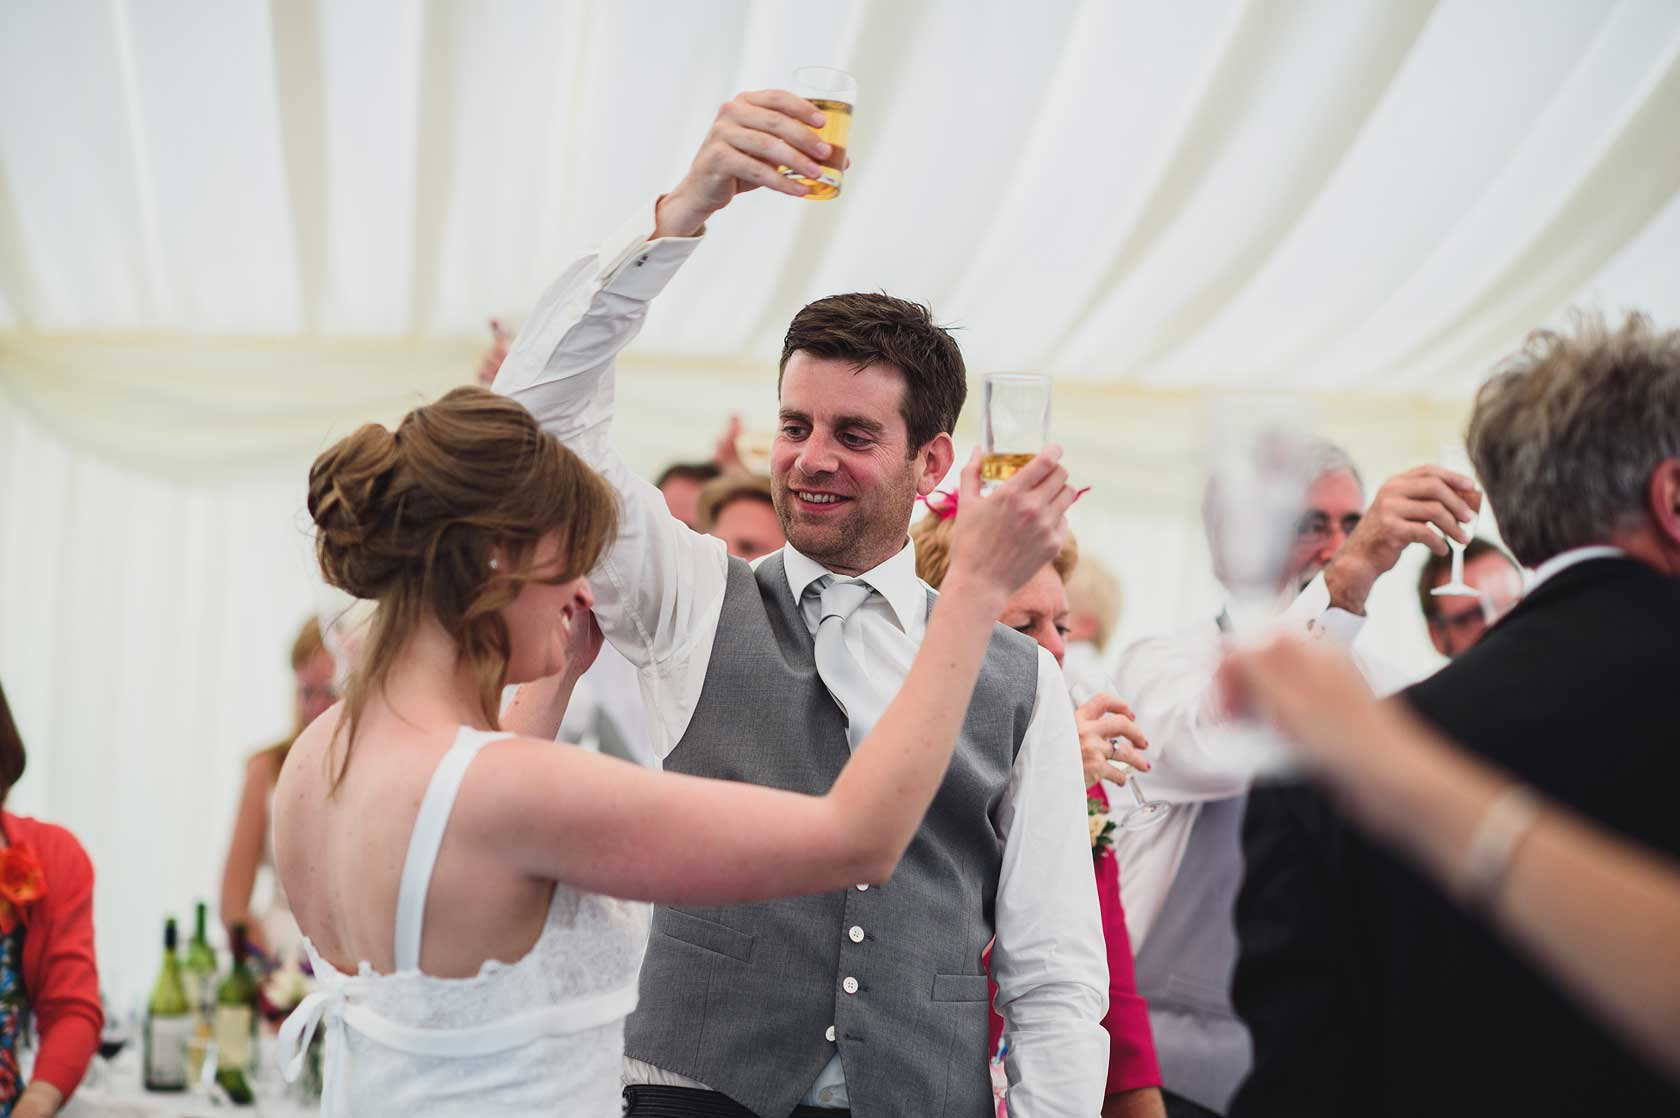 St Marys Odstock Wedding in Wiltshire